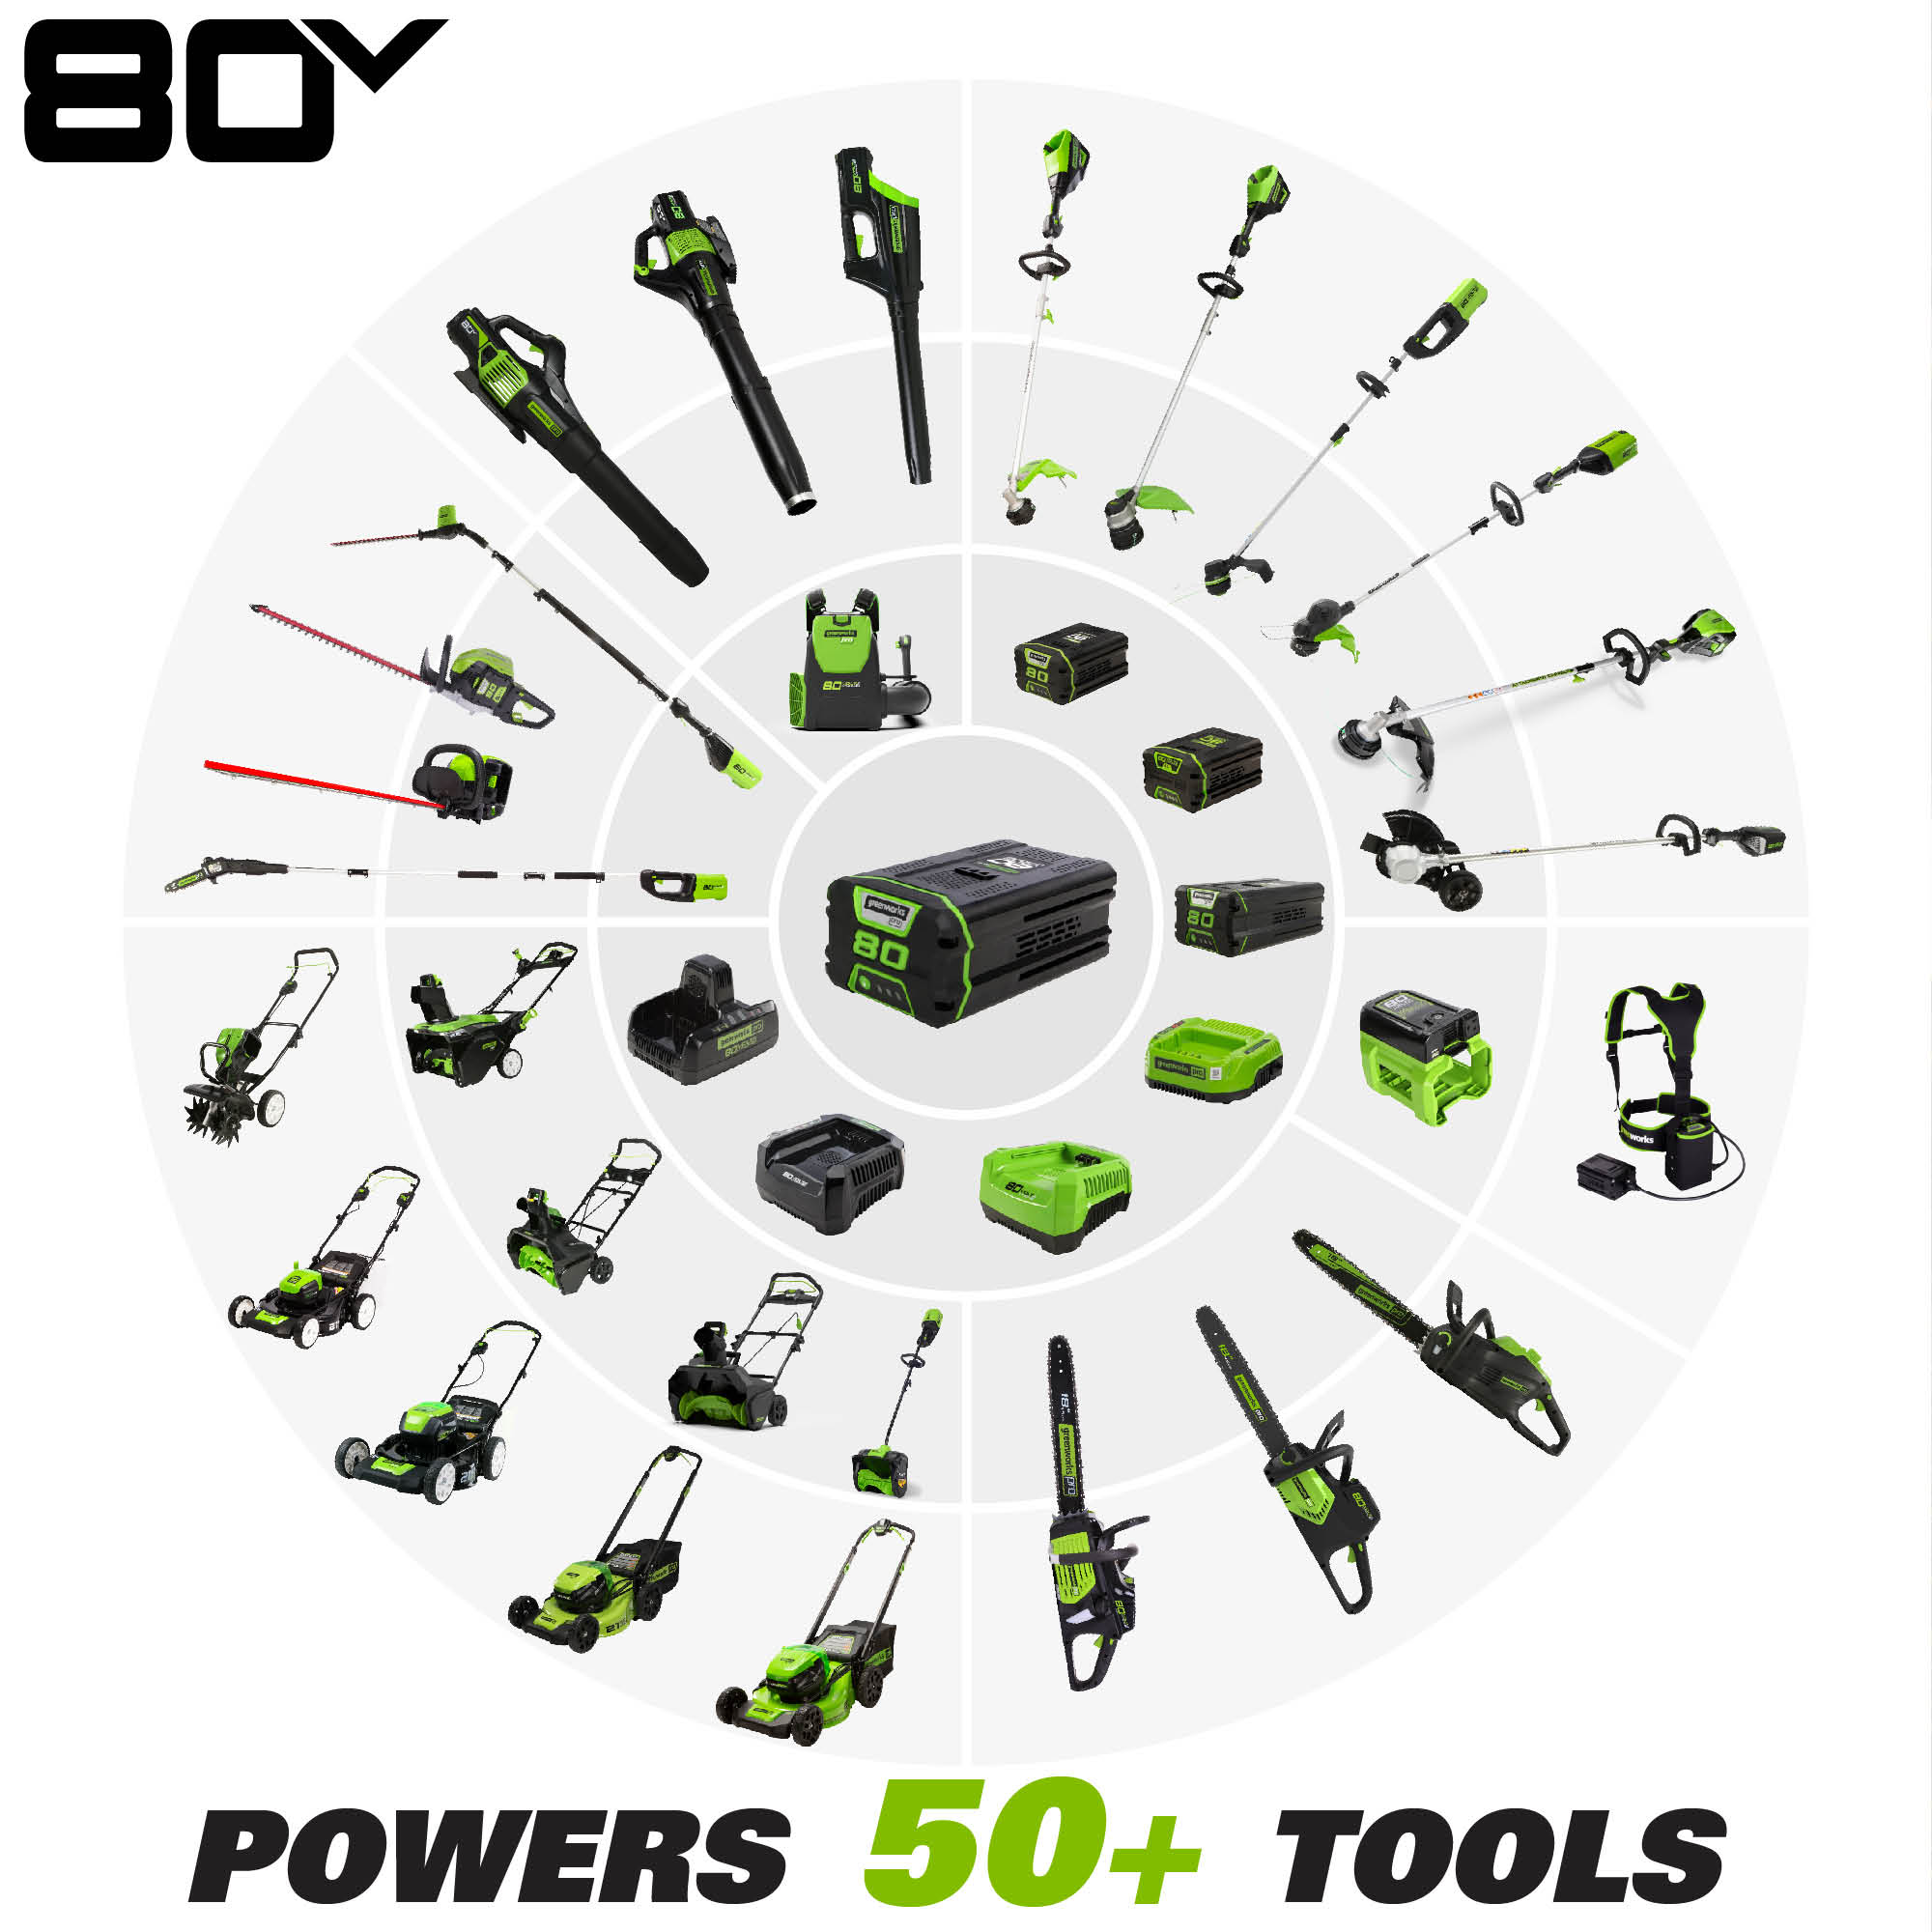 80 family of tools